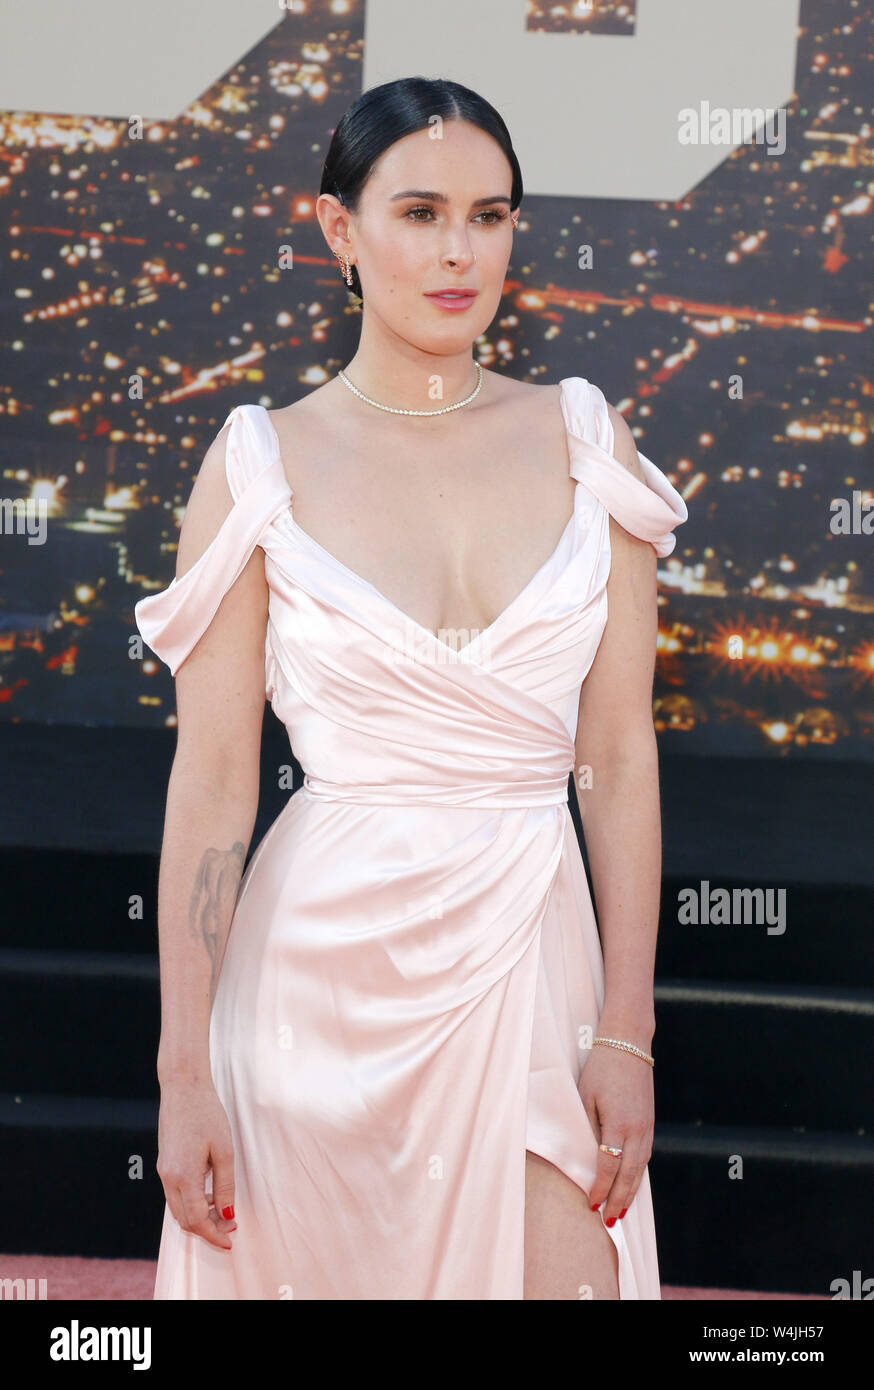 Once Upon A Time At Christmas 2019.Rumer Willis At The Los Angeles Premiere Of Once Upon A